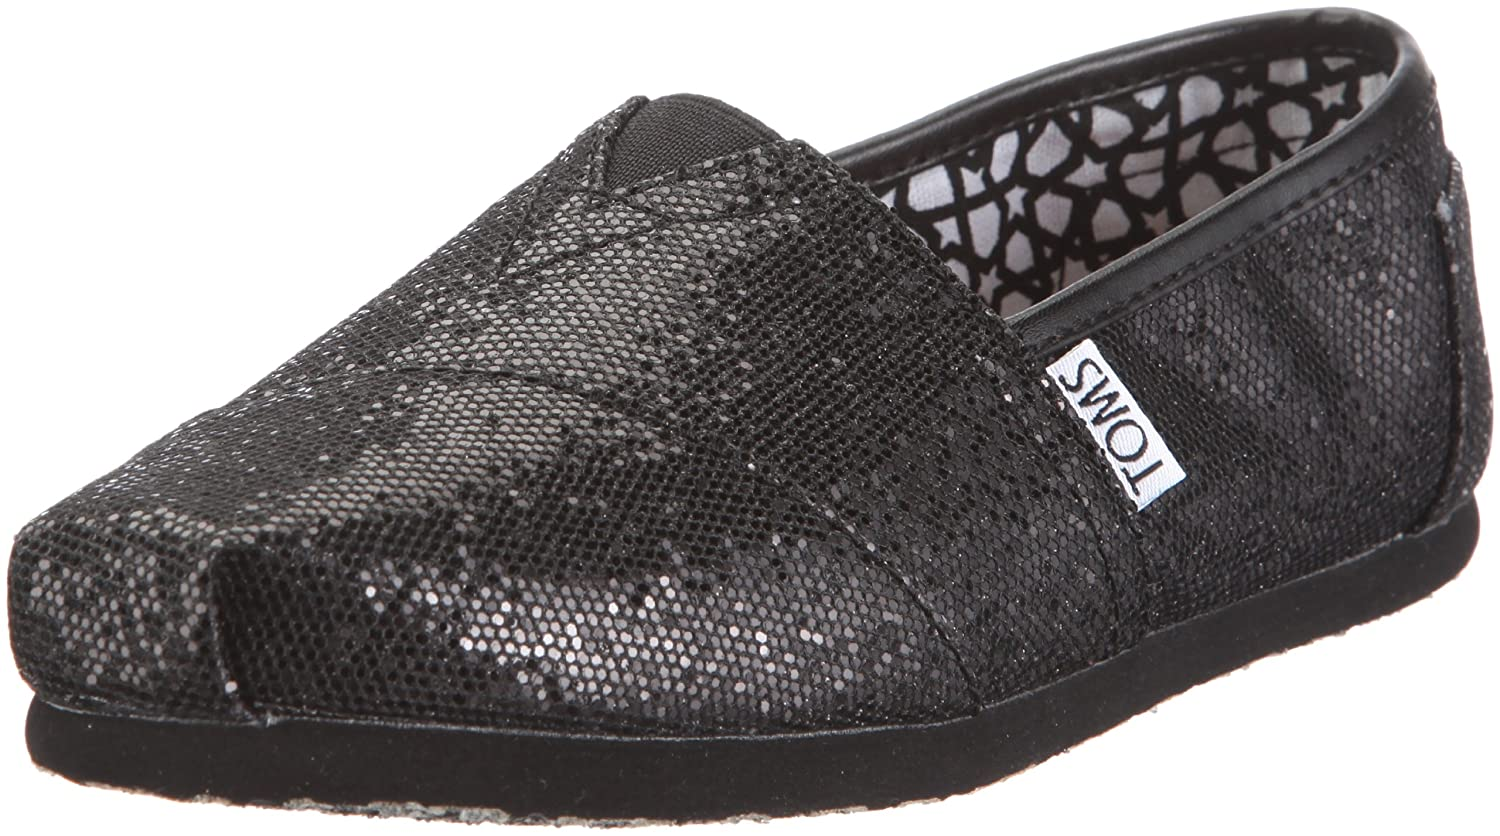 0548cca7b5 Amazon.com | TOMS Shoes Women's Classics Black Glitter Slip-On Shoes |  Loafers & Slip-Ons